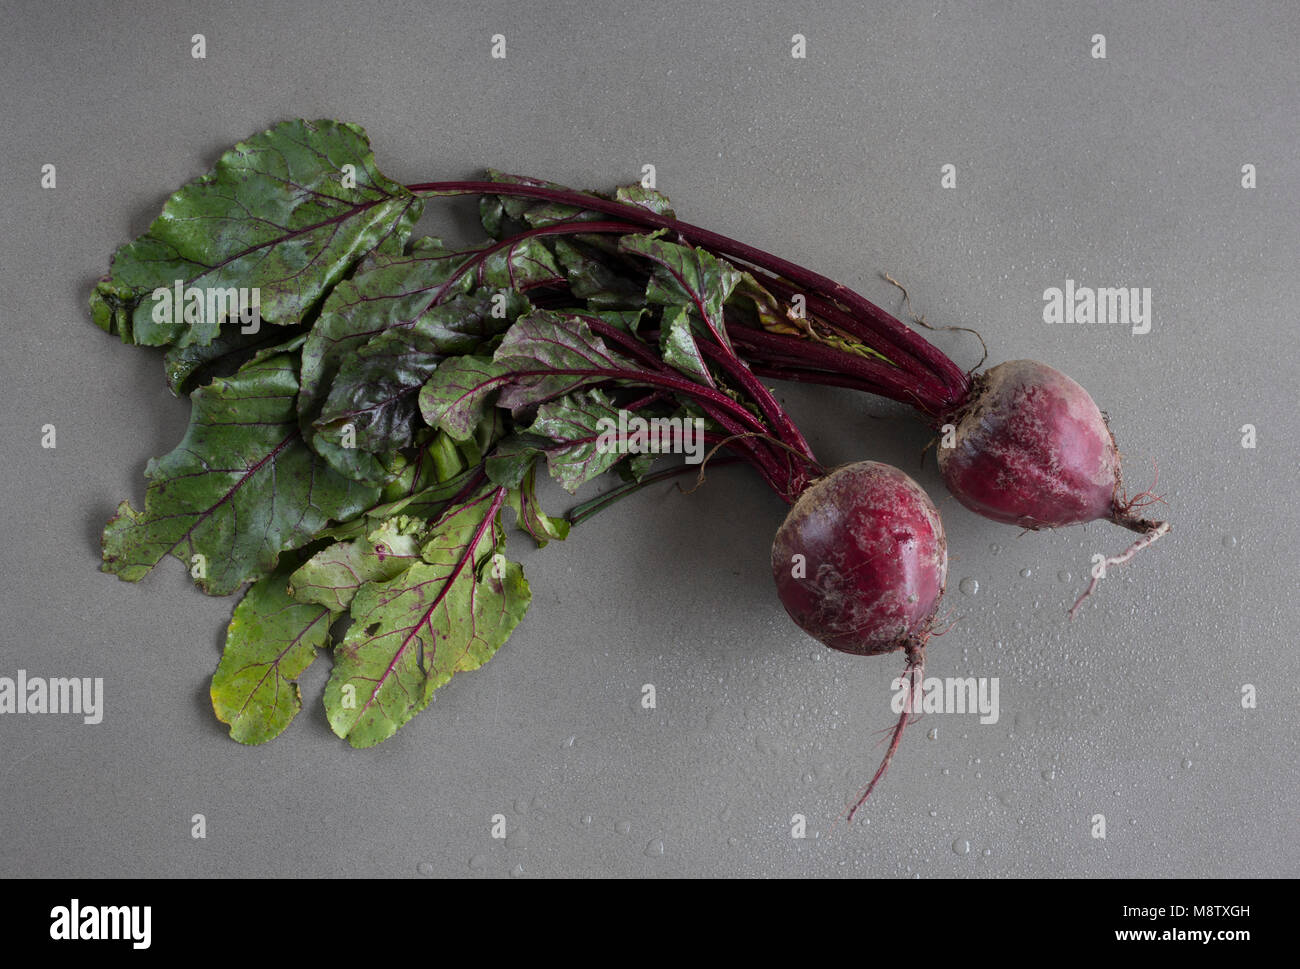 Beetroot with leaves on grey background from above - Stock Image